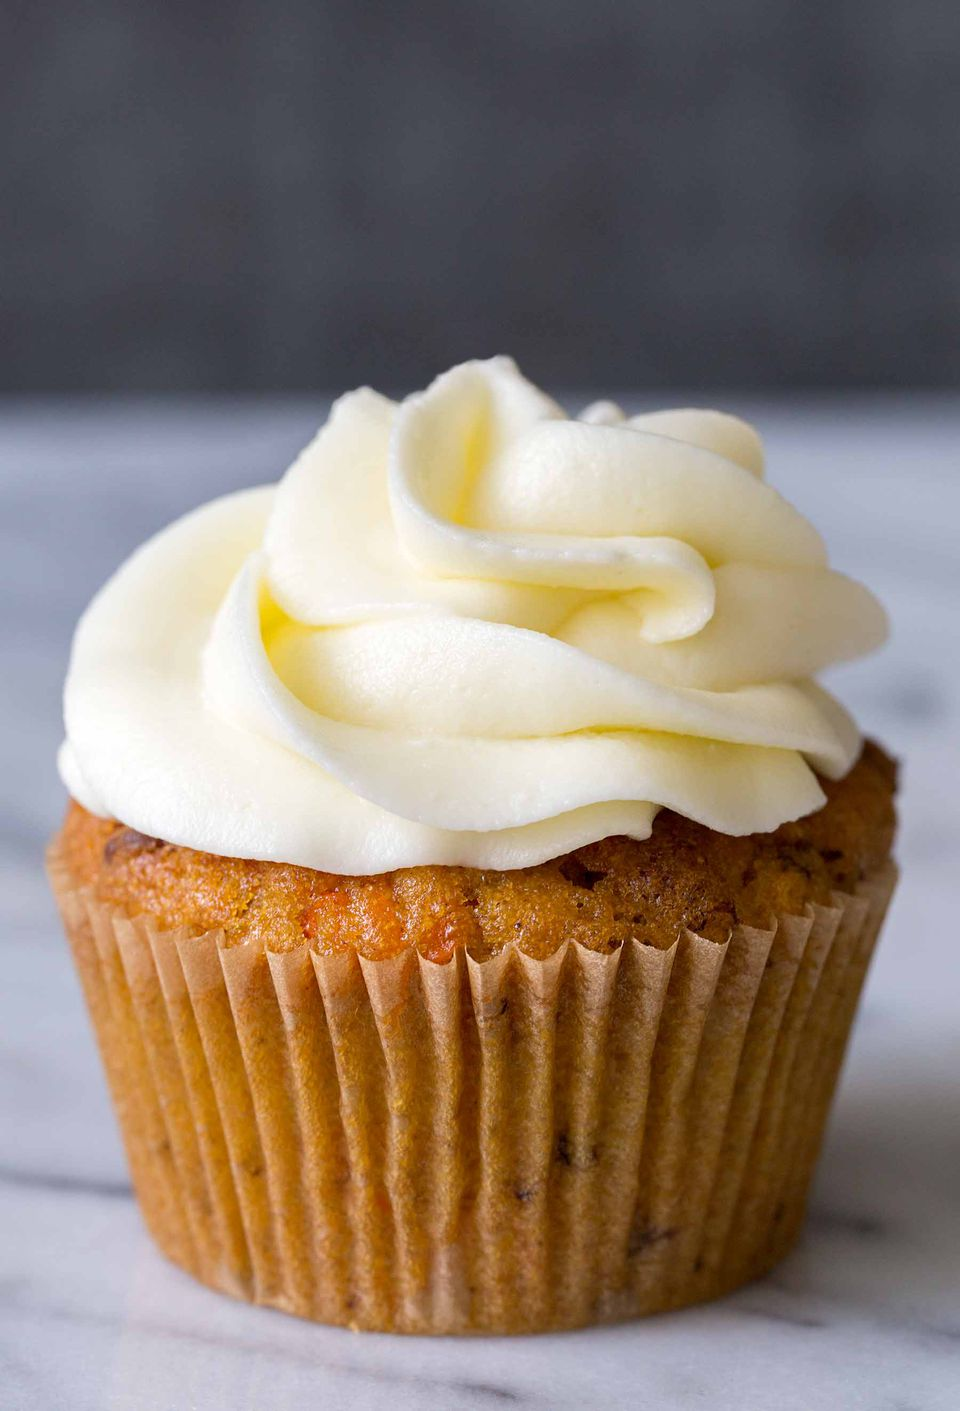 One single carrot cake cupcake topped with cream cheese frosting